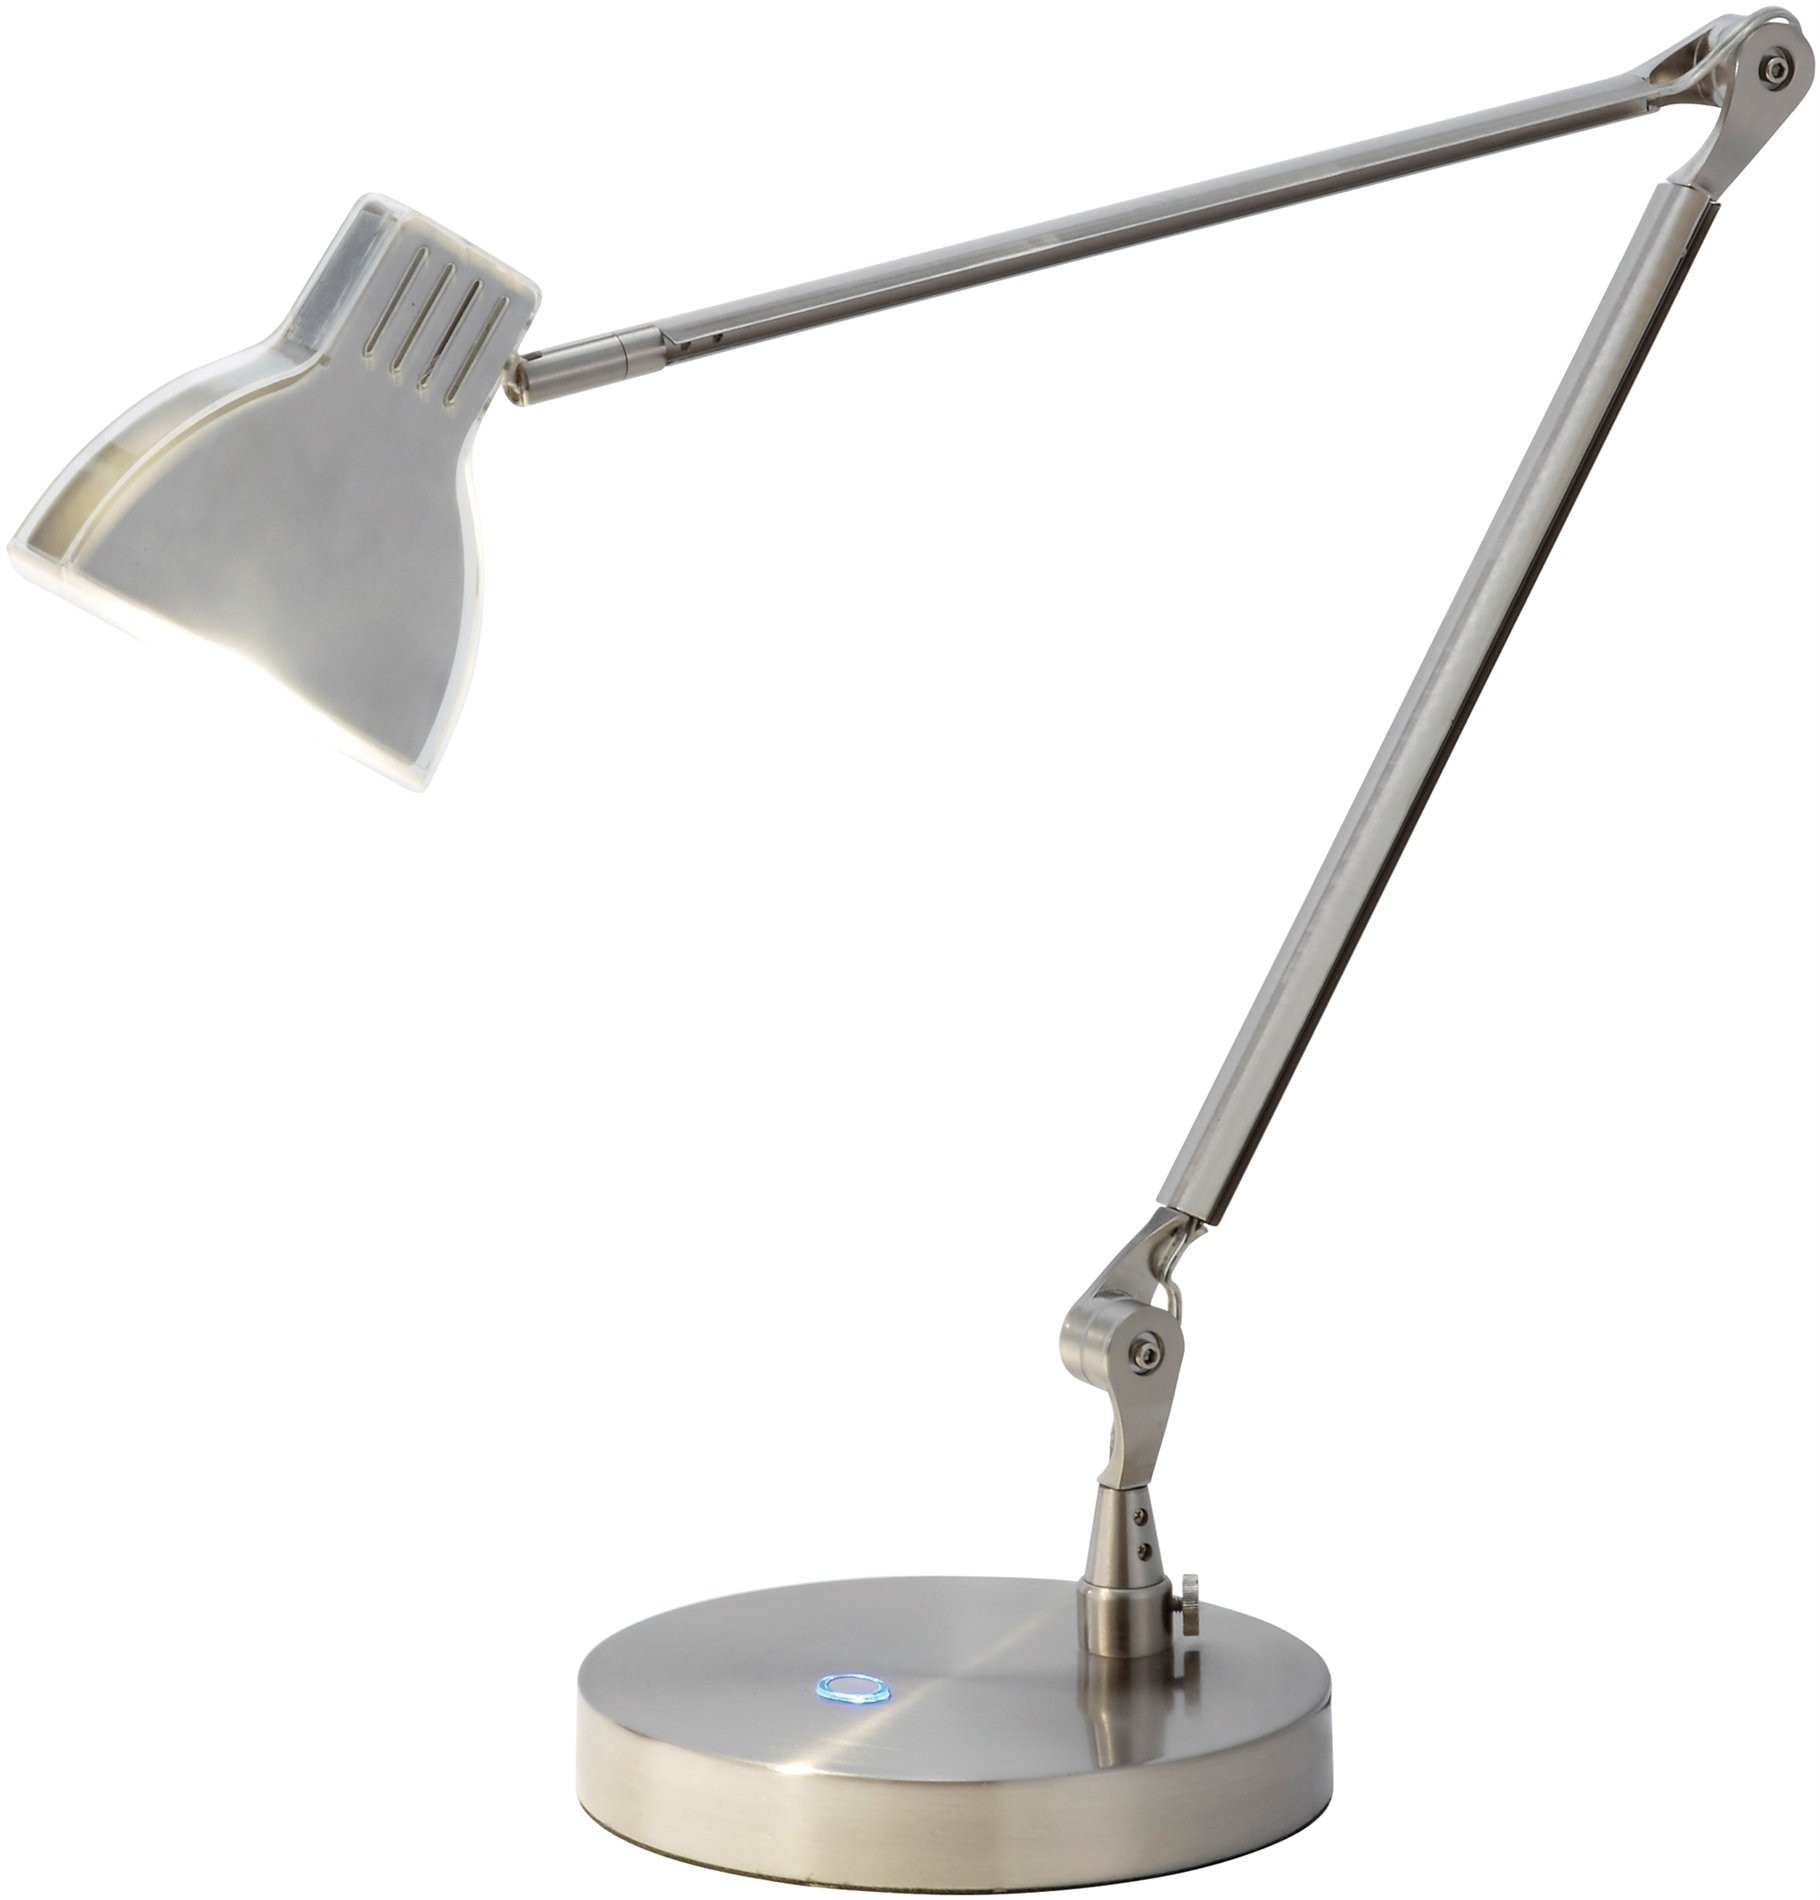 Best ideas about Architect Desk Lamp . Save or Pin Adesso 3181 22 Silver Contemporary LED Architect Desk Lamp Now.